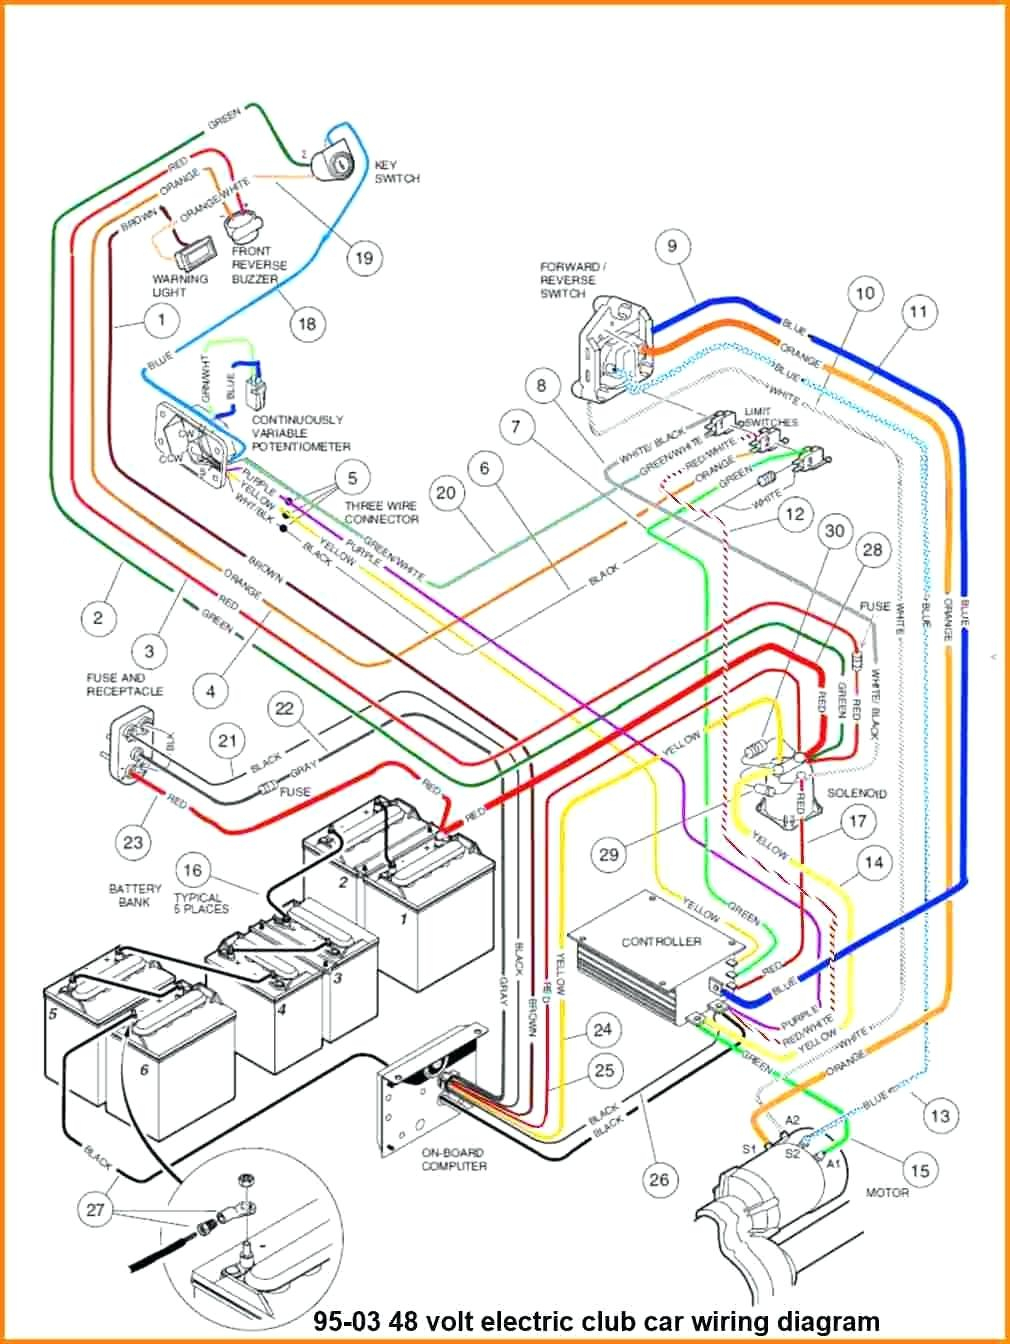 36 Volt Wiring Diagram - Wiring Diagrams - 36 Volt Golf Cart Wiring Diagram